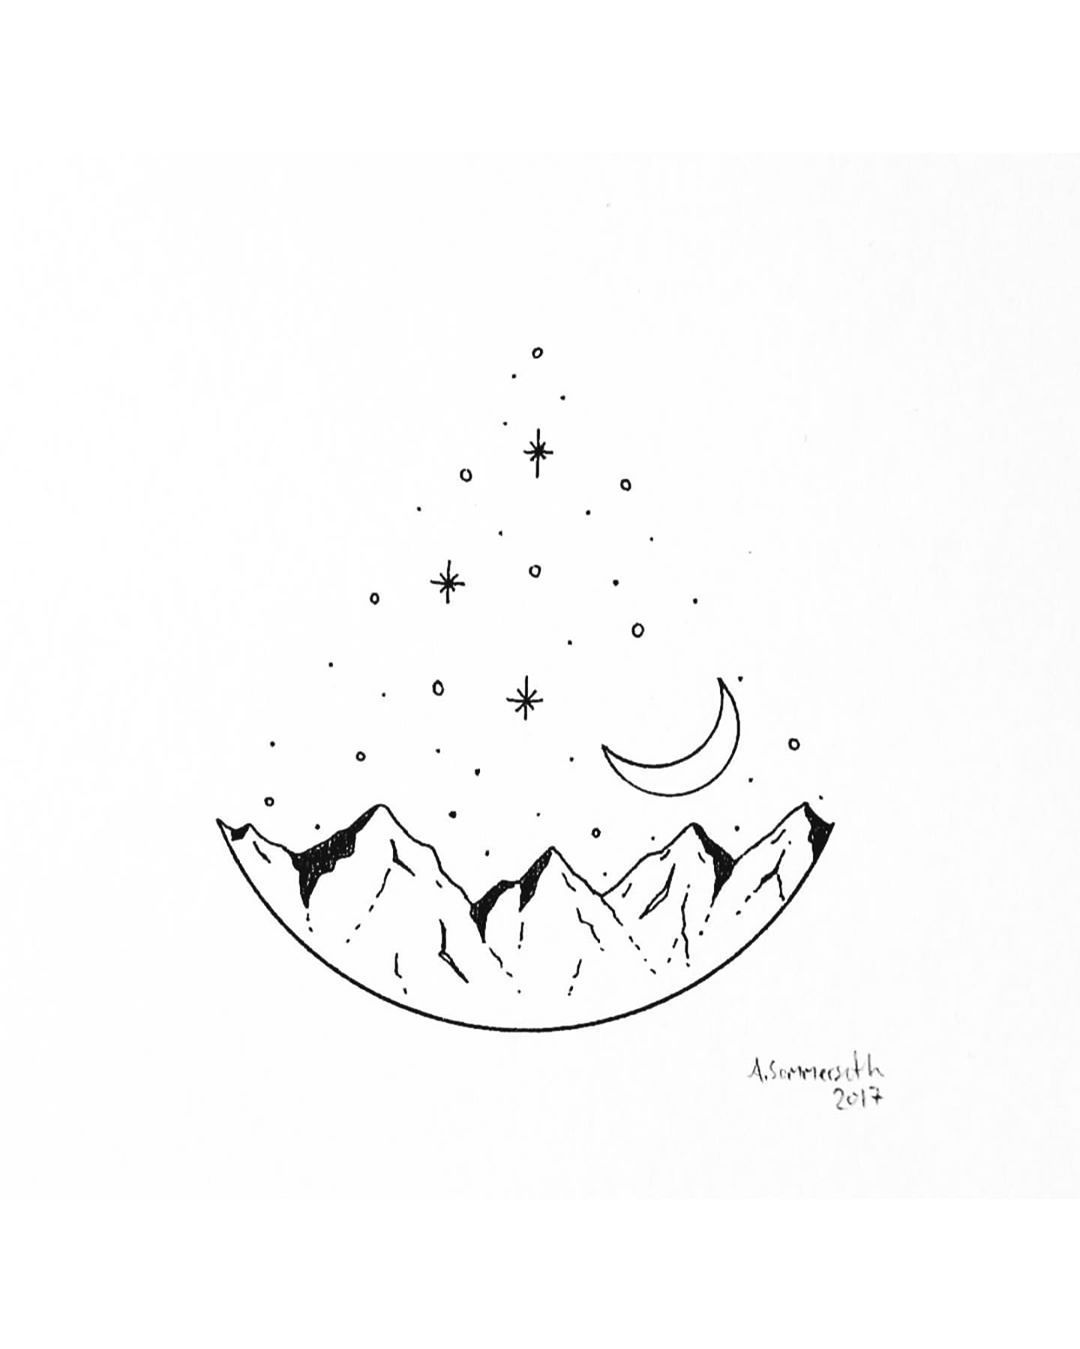 Moon Body Soul On Instagram There Is Peaceful There Is Wild I Am Both At The Same Time S In 2020 Space Drawings Mini Drawings Art Drawings Simple